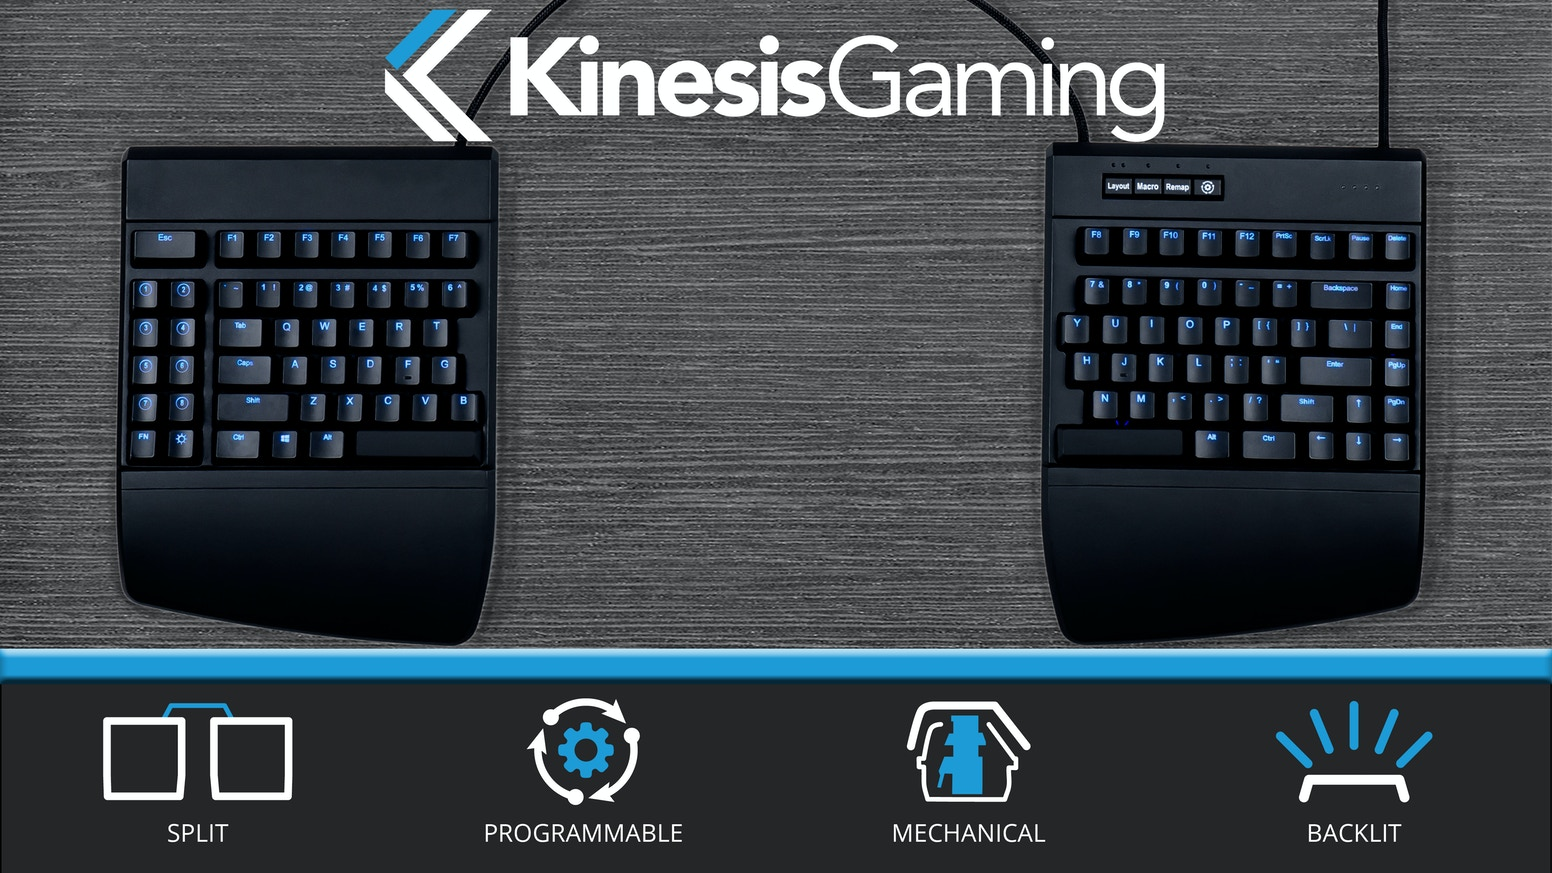 The first split keyboard designed specifically for gamers. Onboard programmable, Cherry mechanical, LED backlighting and much more. RGB model now available with cushioned palm supports. ORDER NOW at KinesisGaming.com. MSRP: $219.00 USD